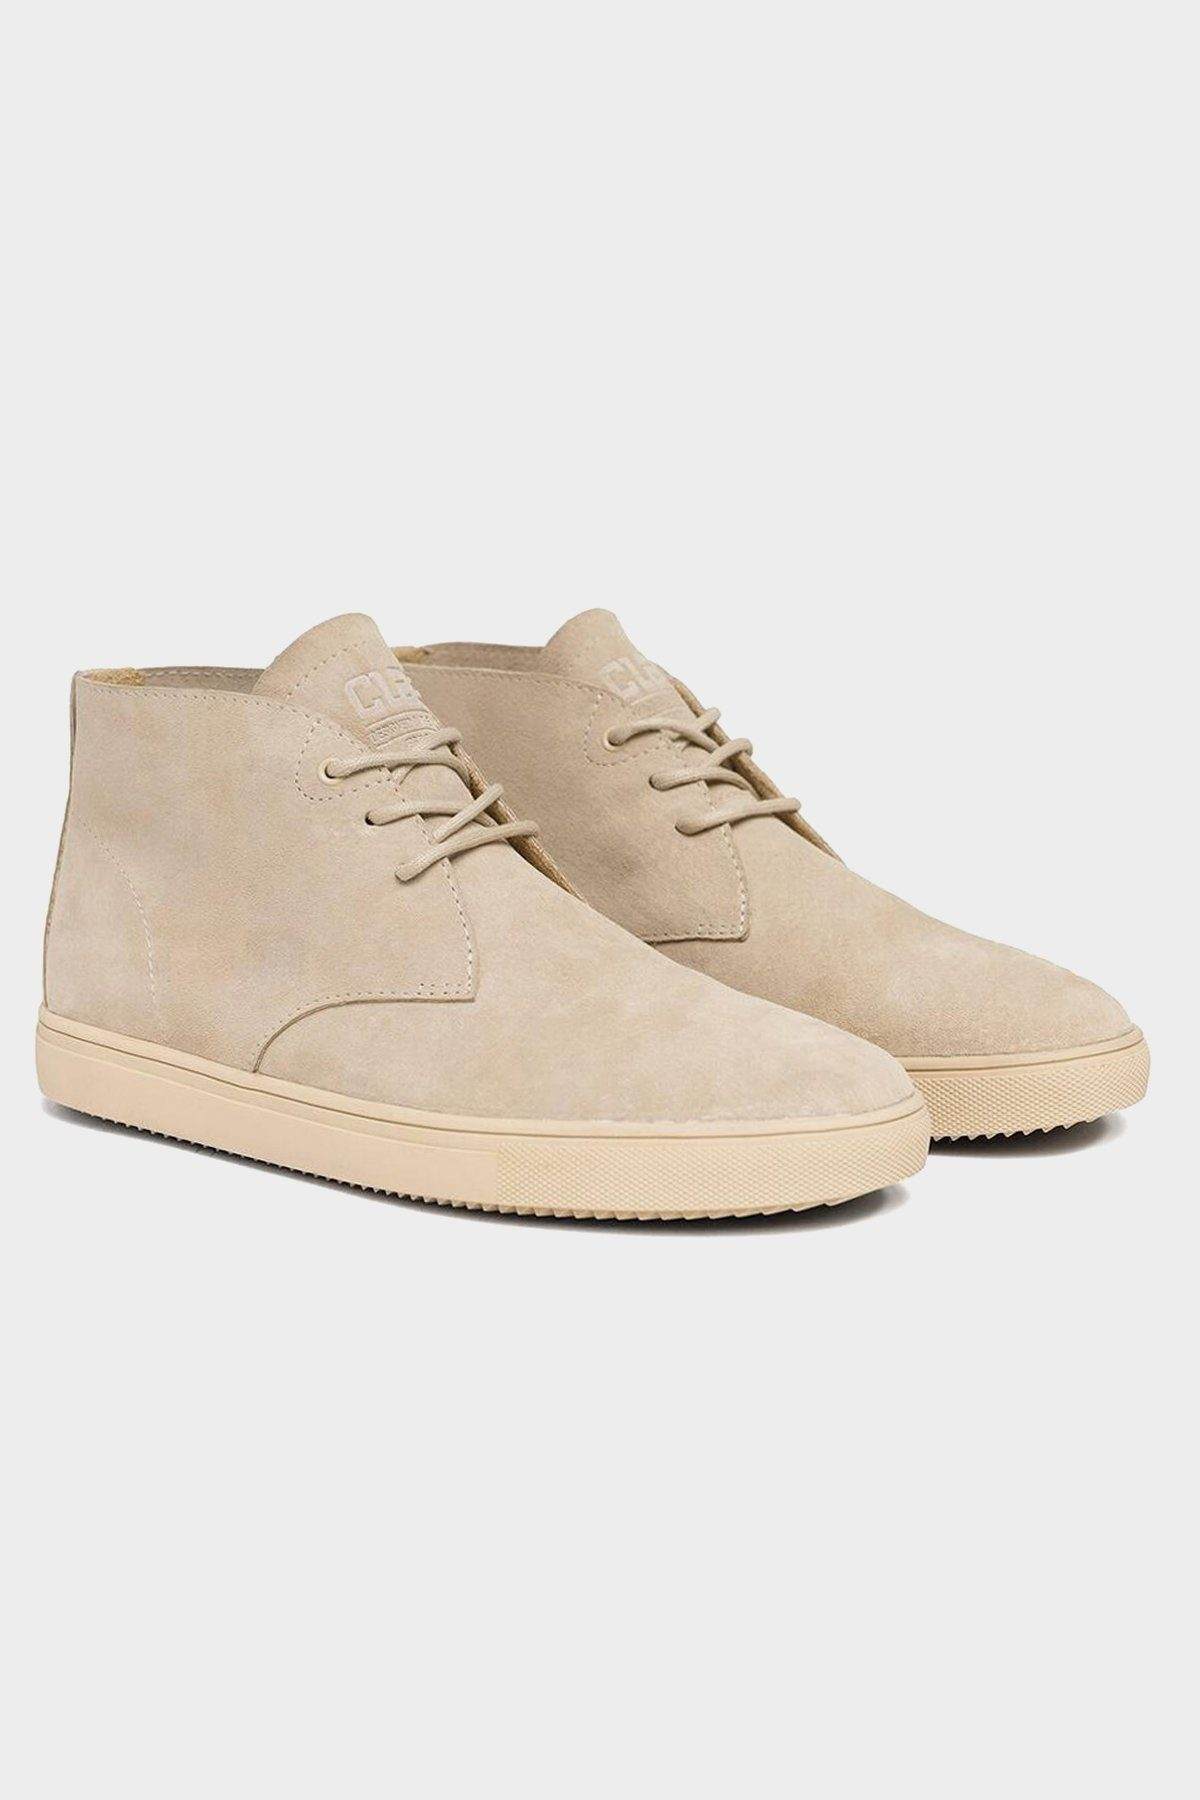 Light Tan Strayhorn SP Unlined Shoes - Life in Paradigm Menswear London